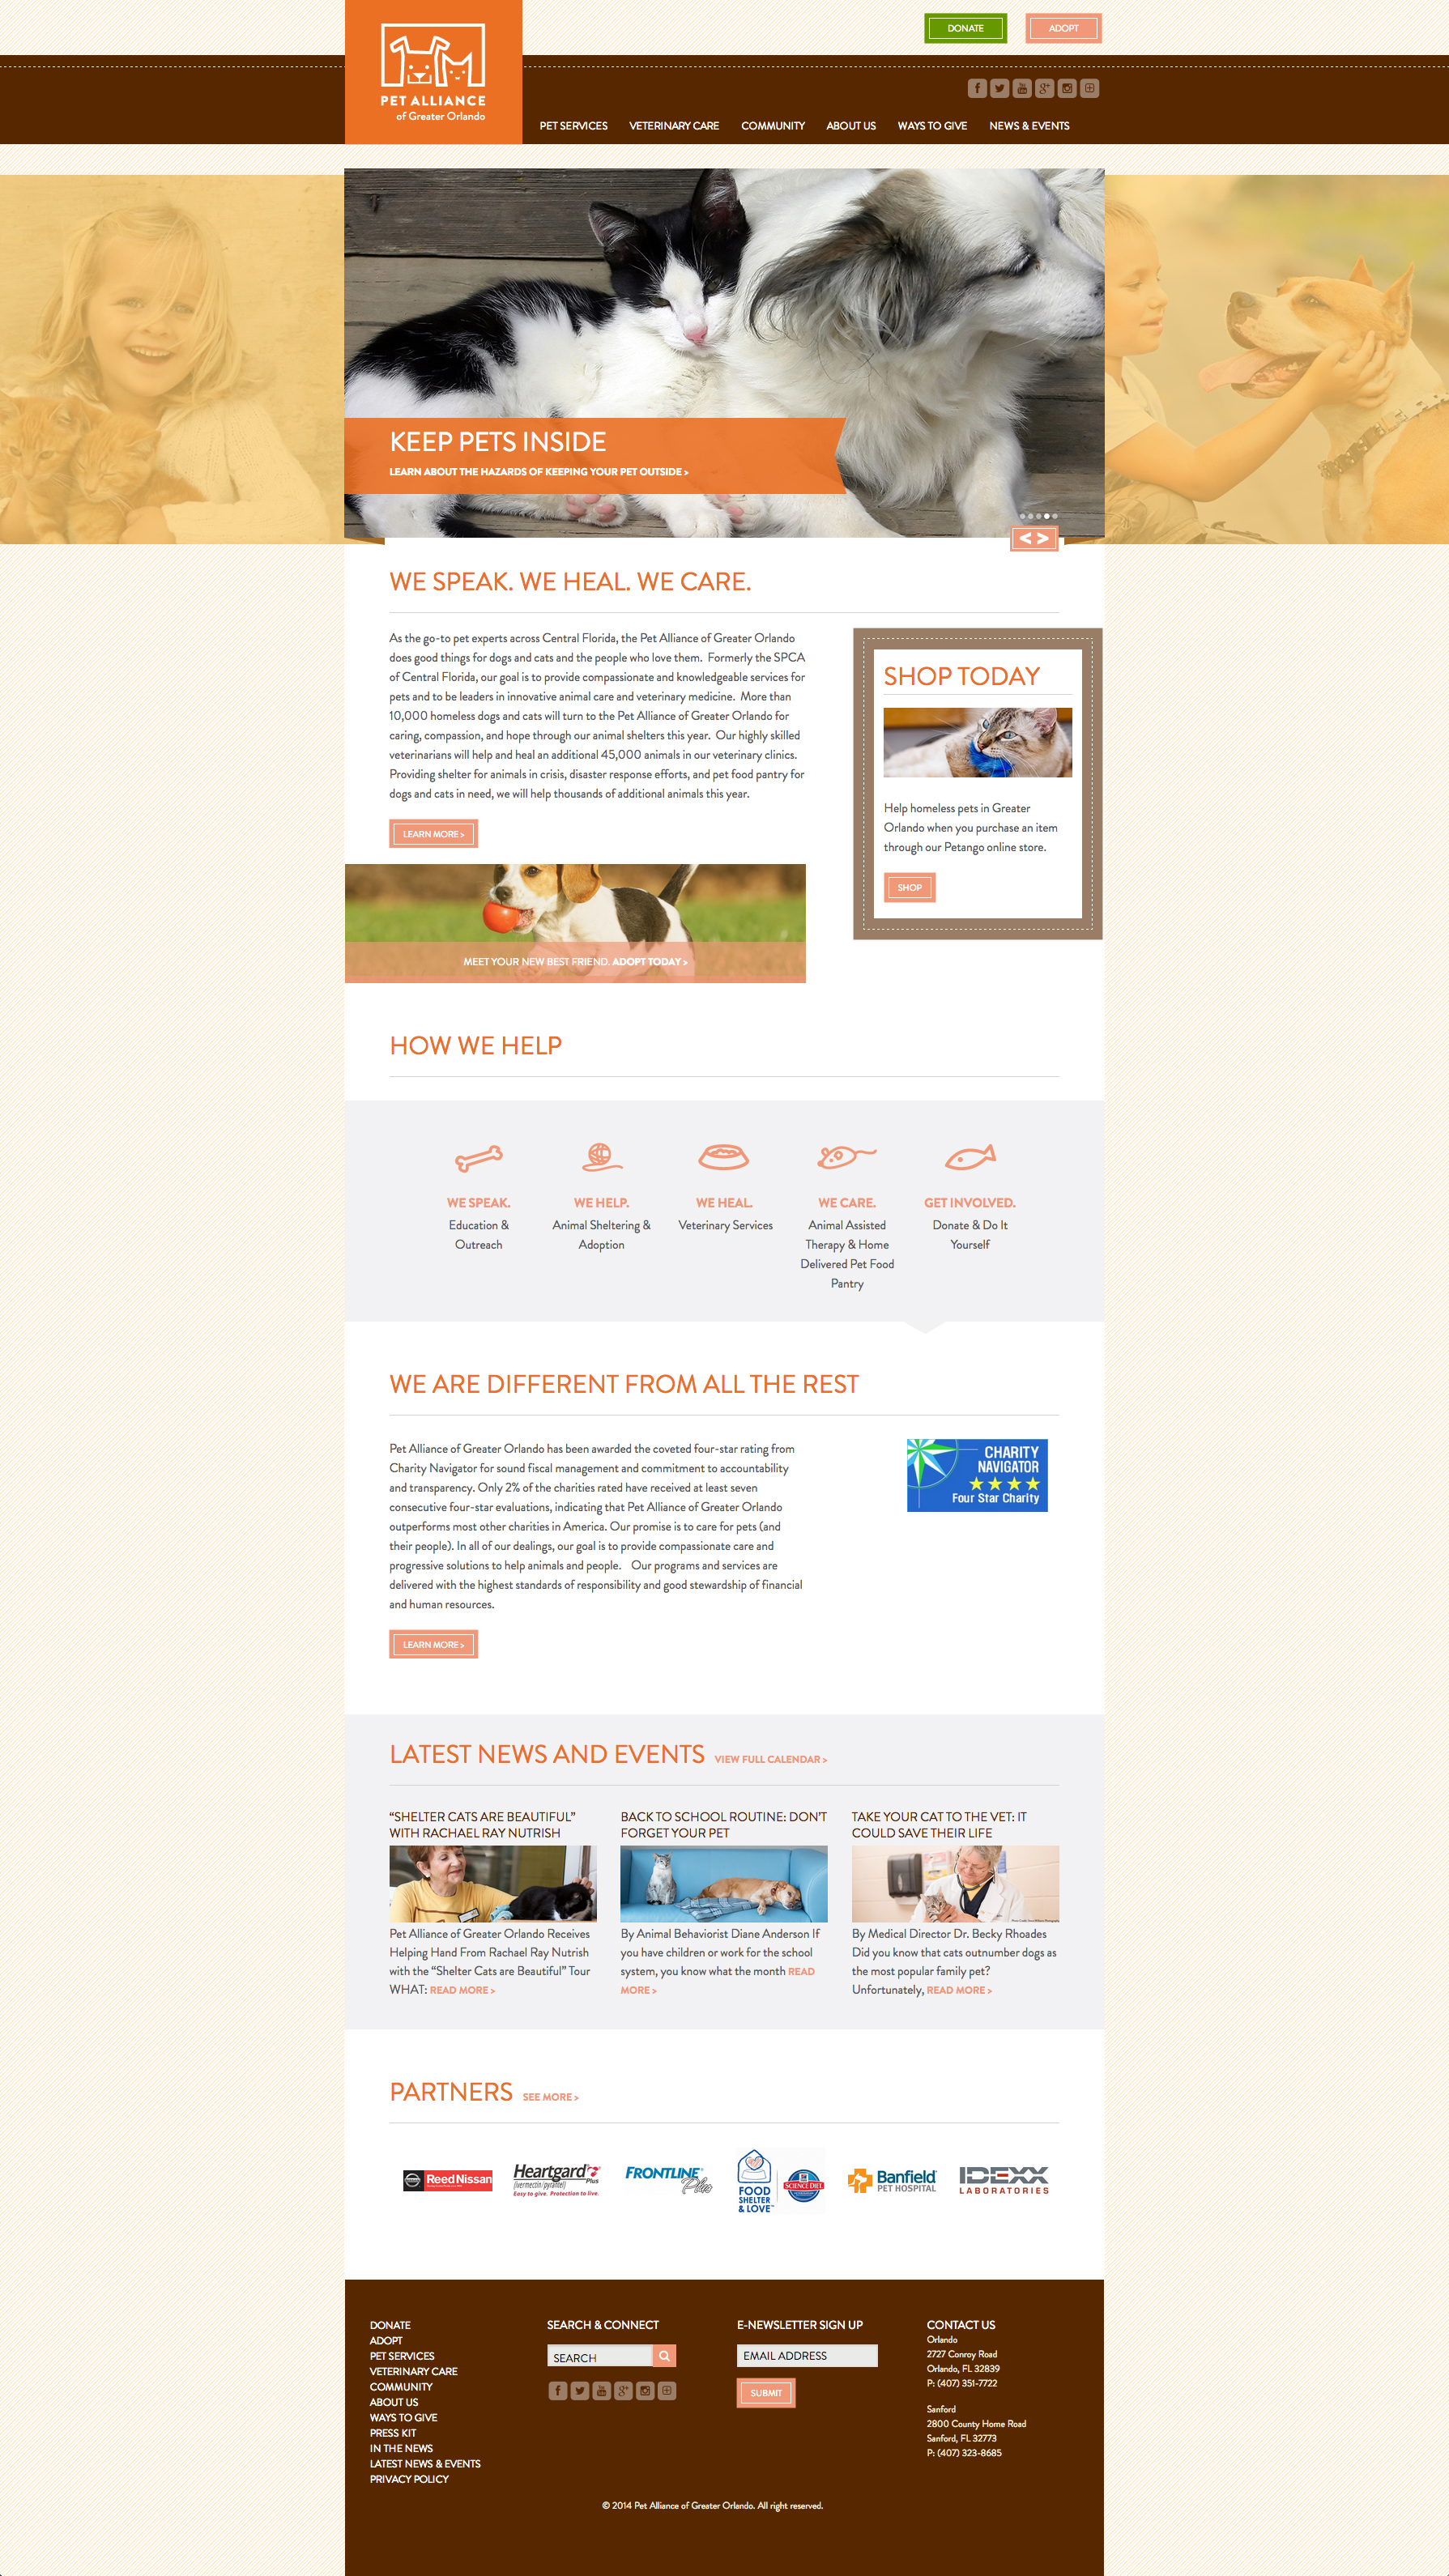 Pet Alliance of Greater Orlando Home Page